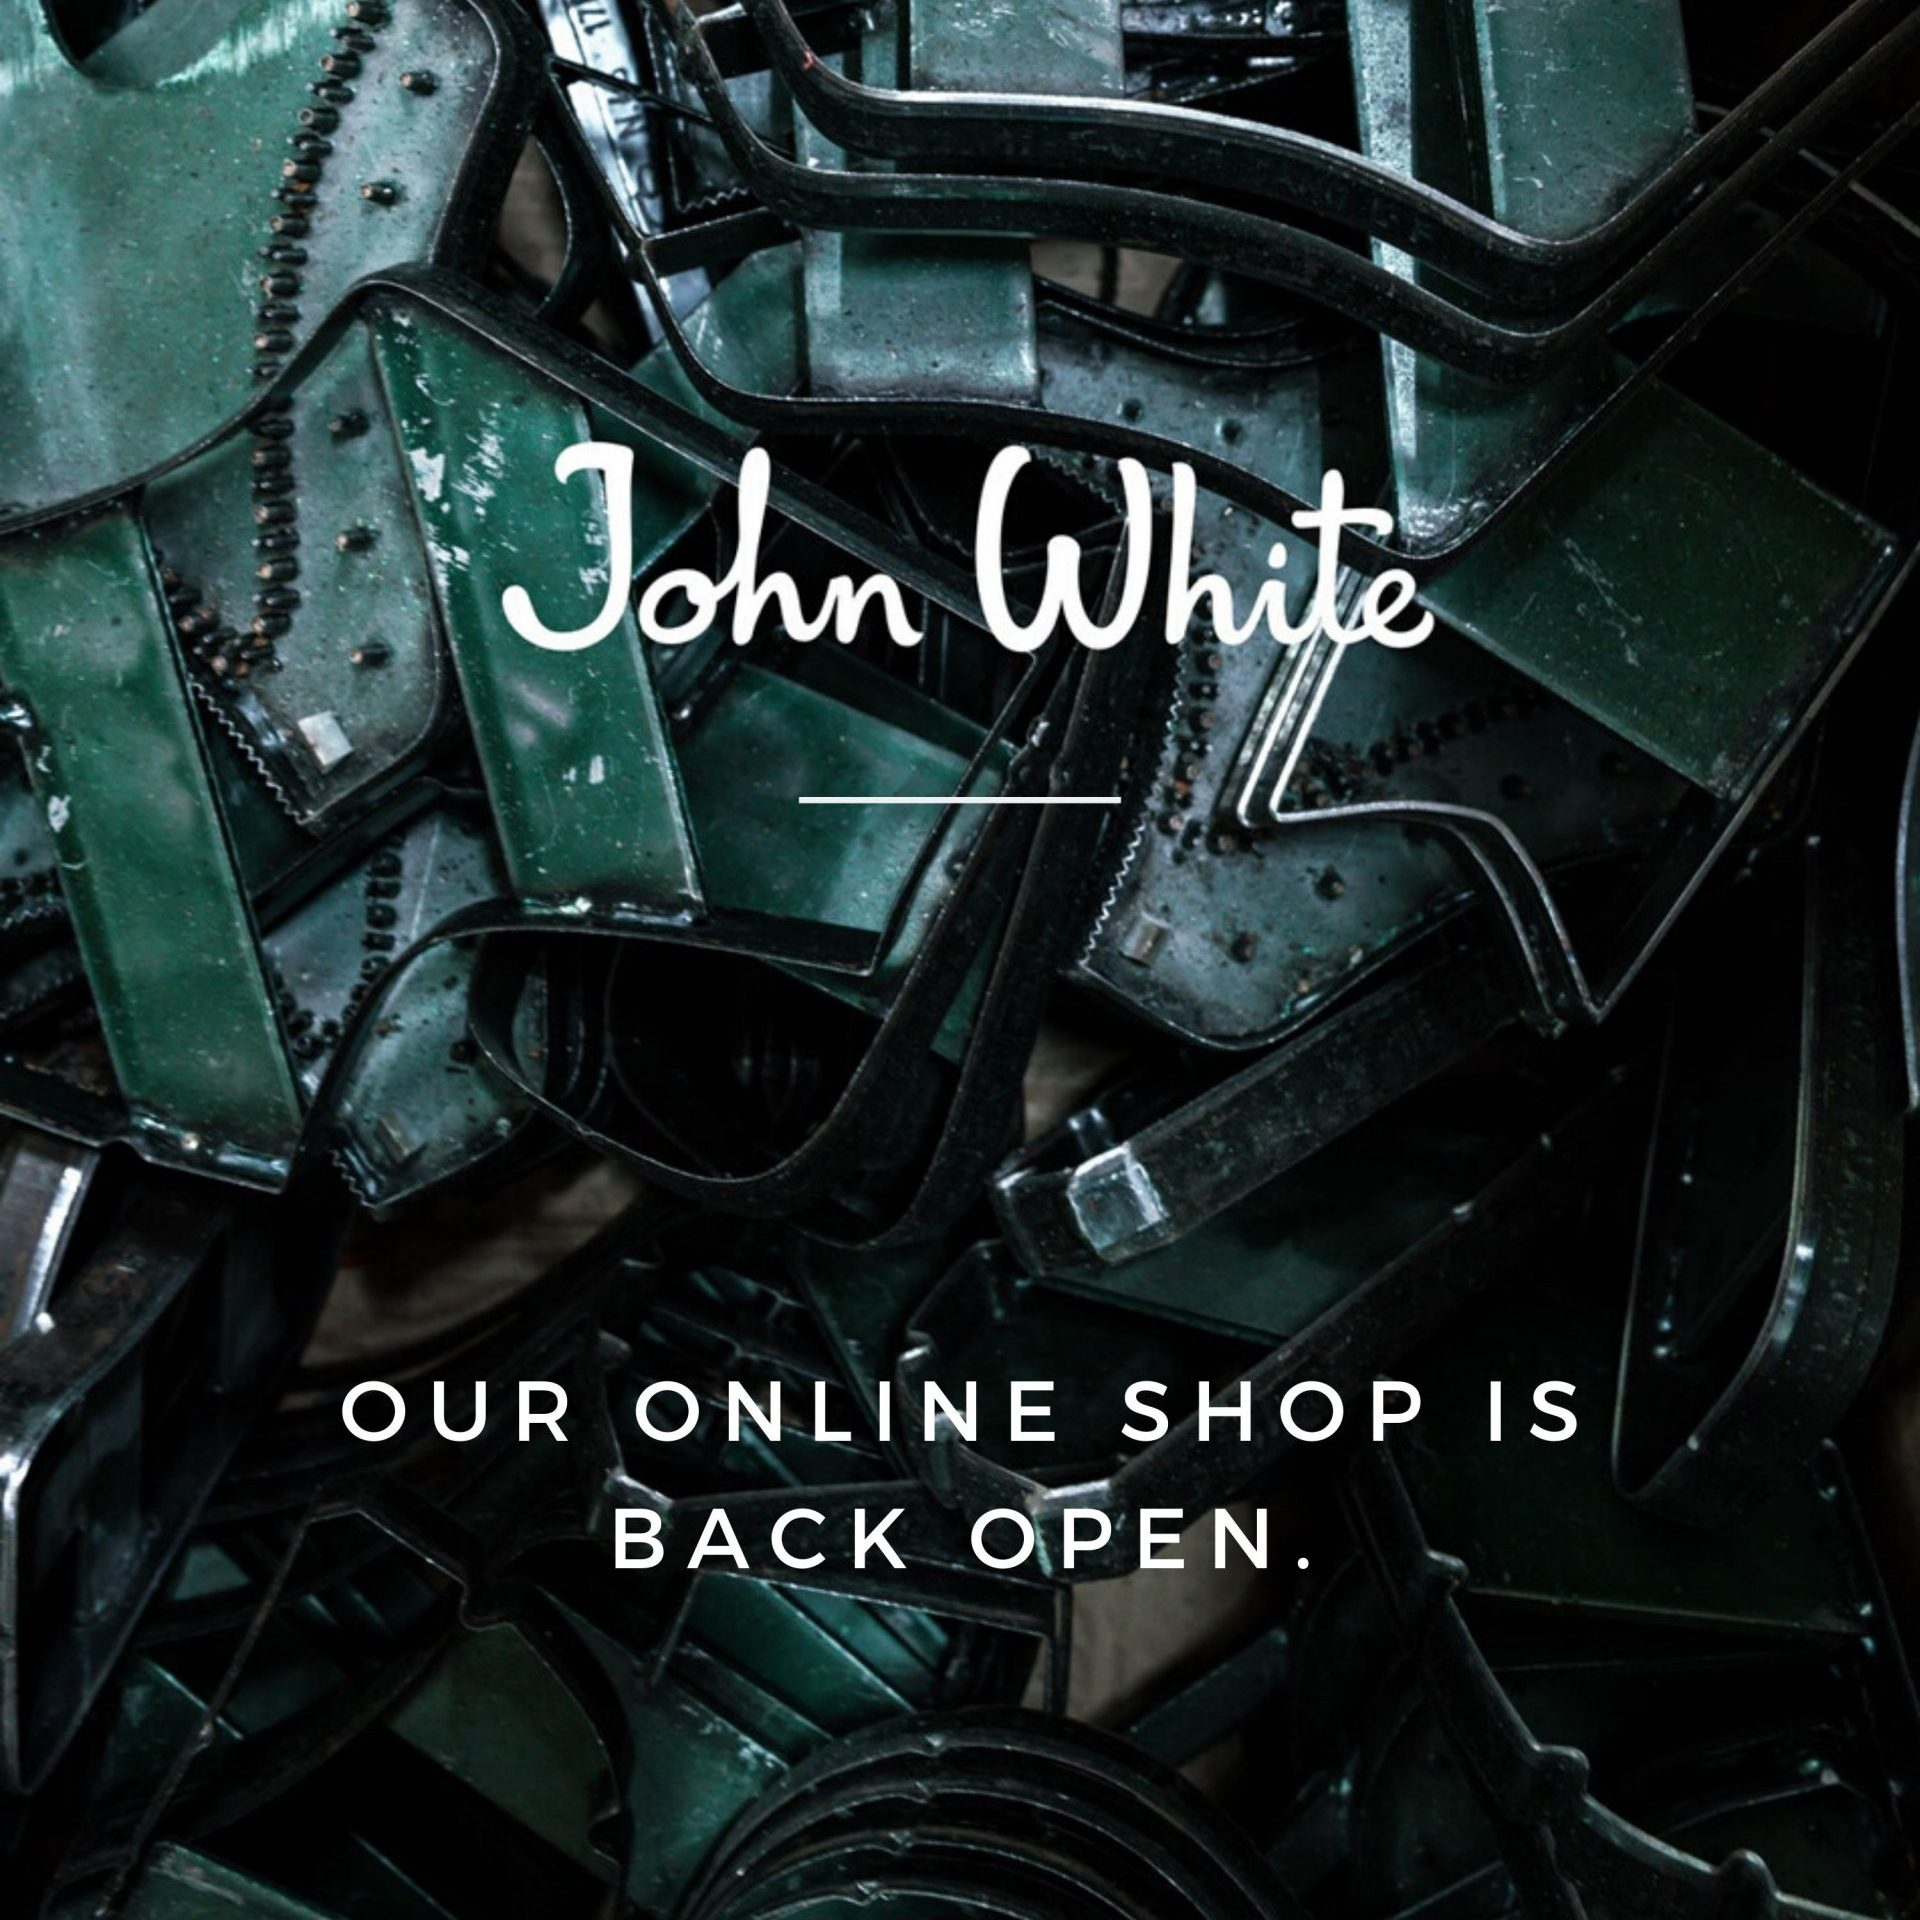 John White Shoes - Makers of Quality